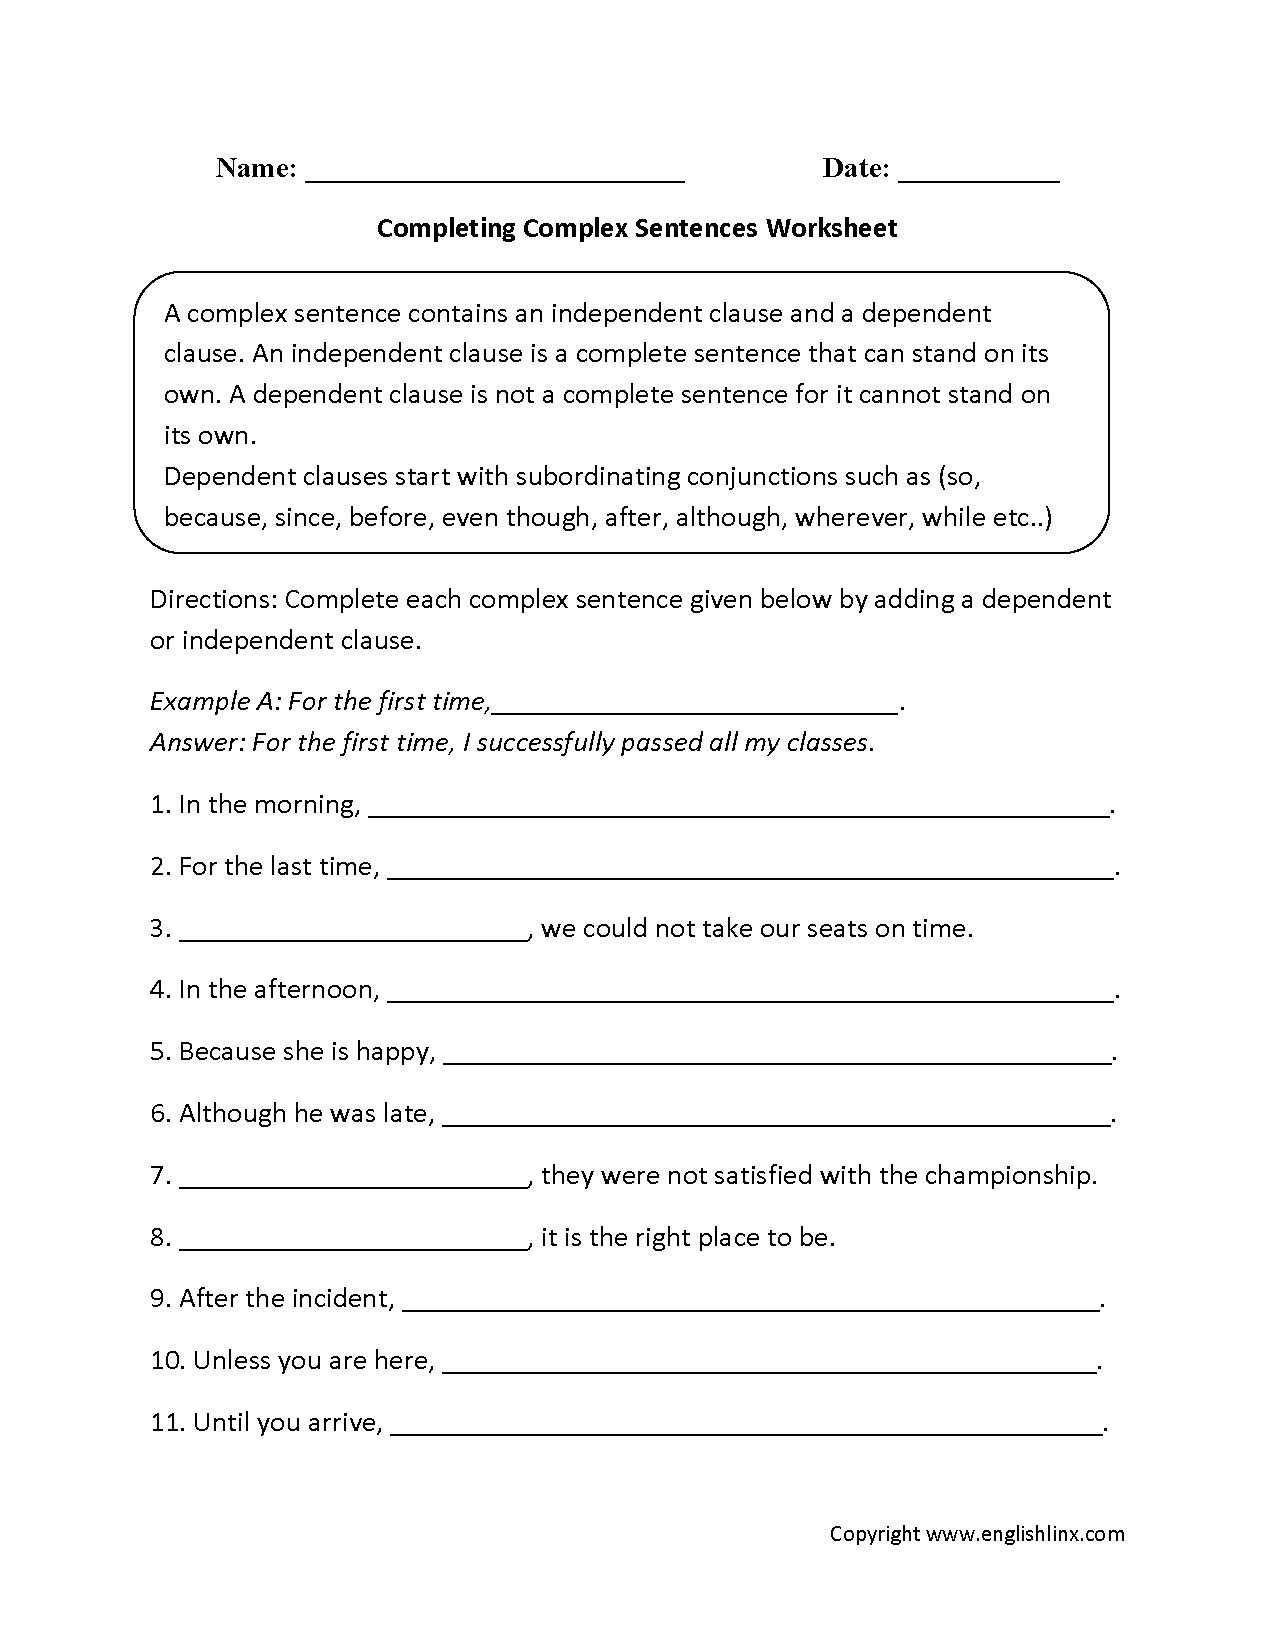 worksheet Dependent Clause Worksheet completing complex sentences worksheets pinterest this worksheet directs the student to complete each sentence by adding an independent clause a s